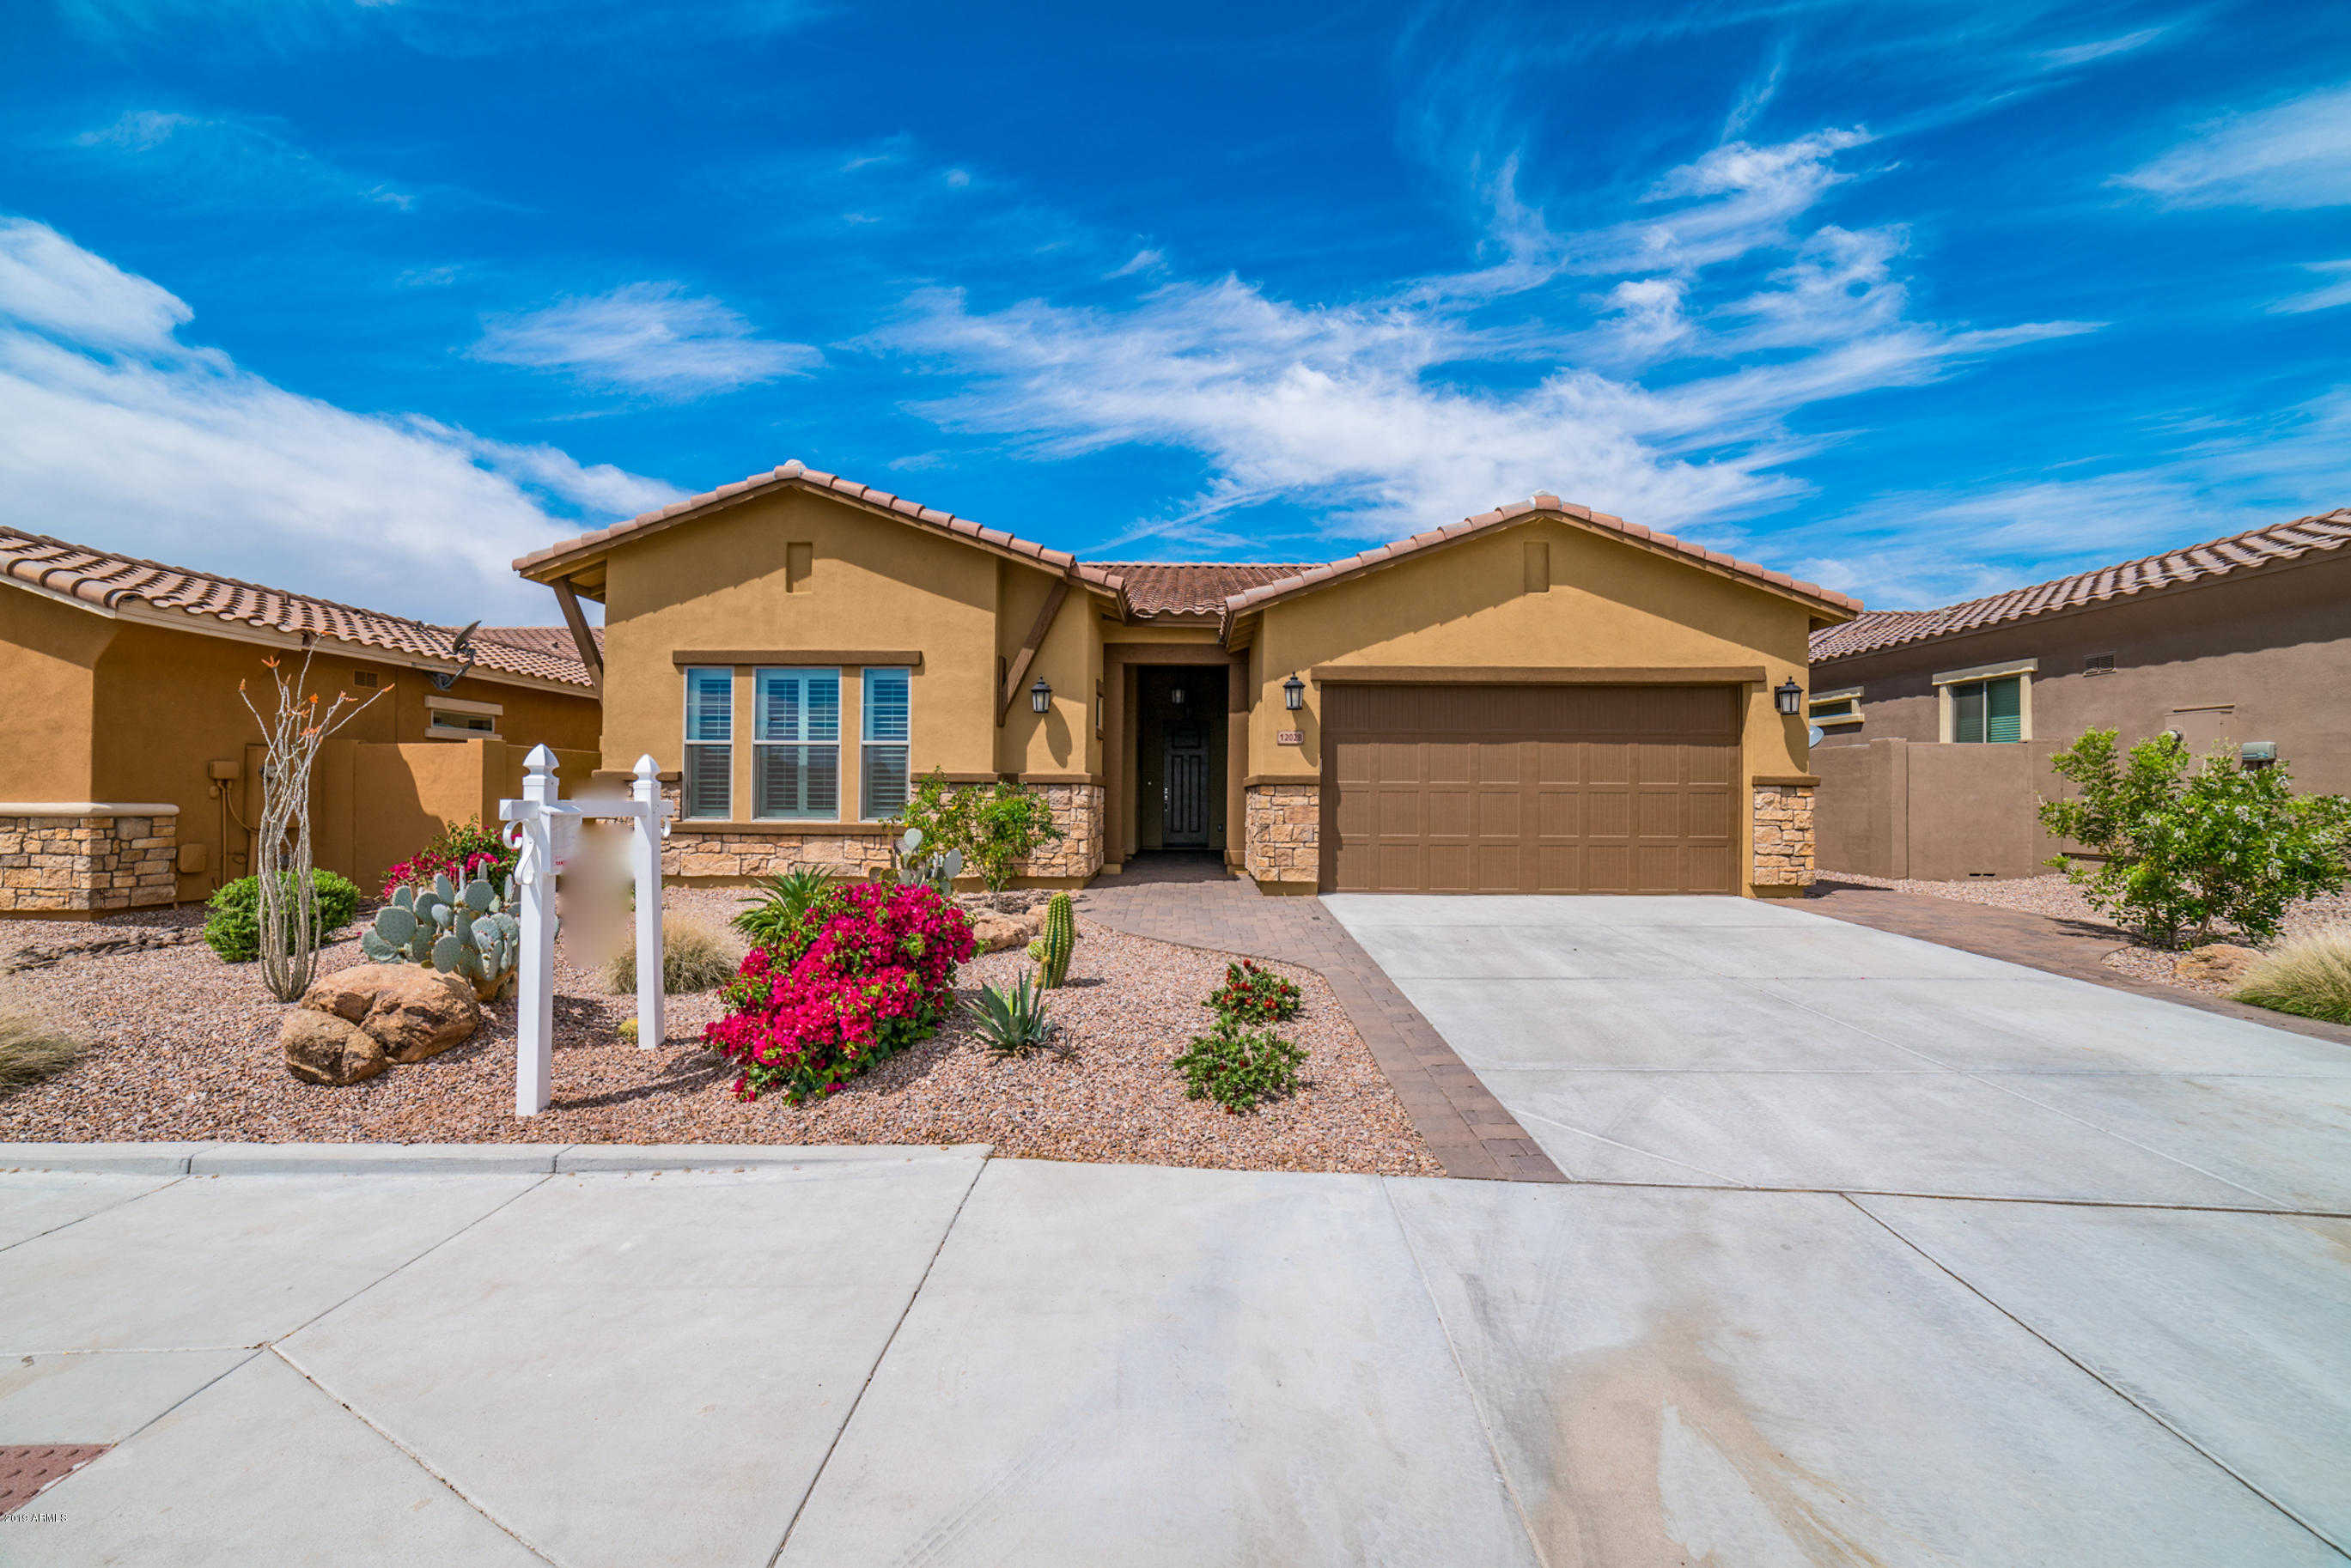 $498,000 - 3Br/2Ba - Home for Sale in Estrella Parcel 5.5 Phase 1, Goodyear